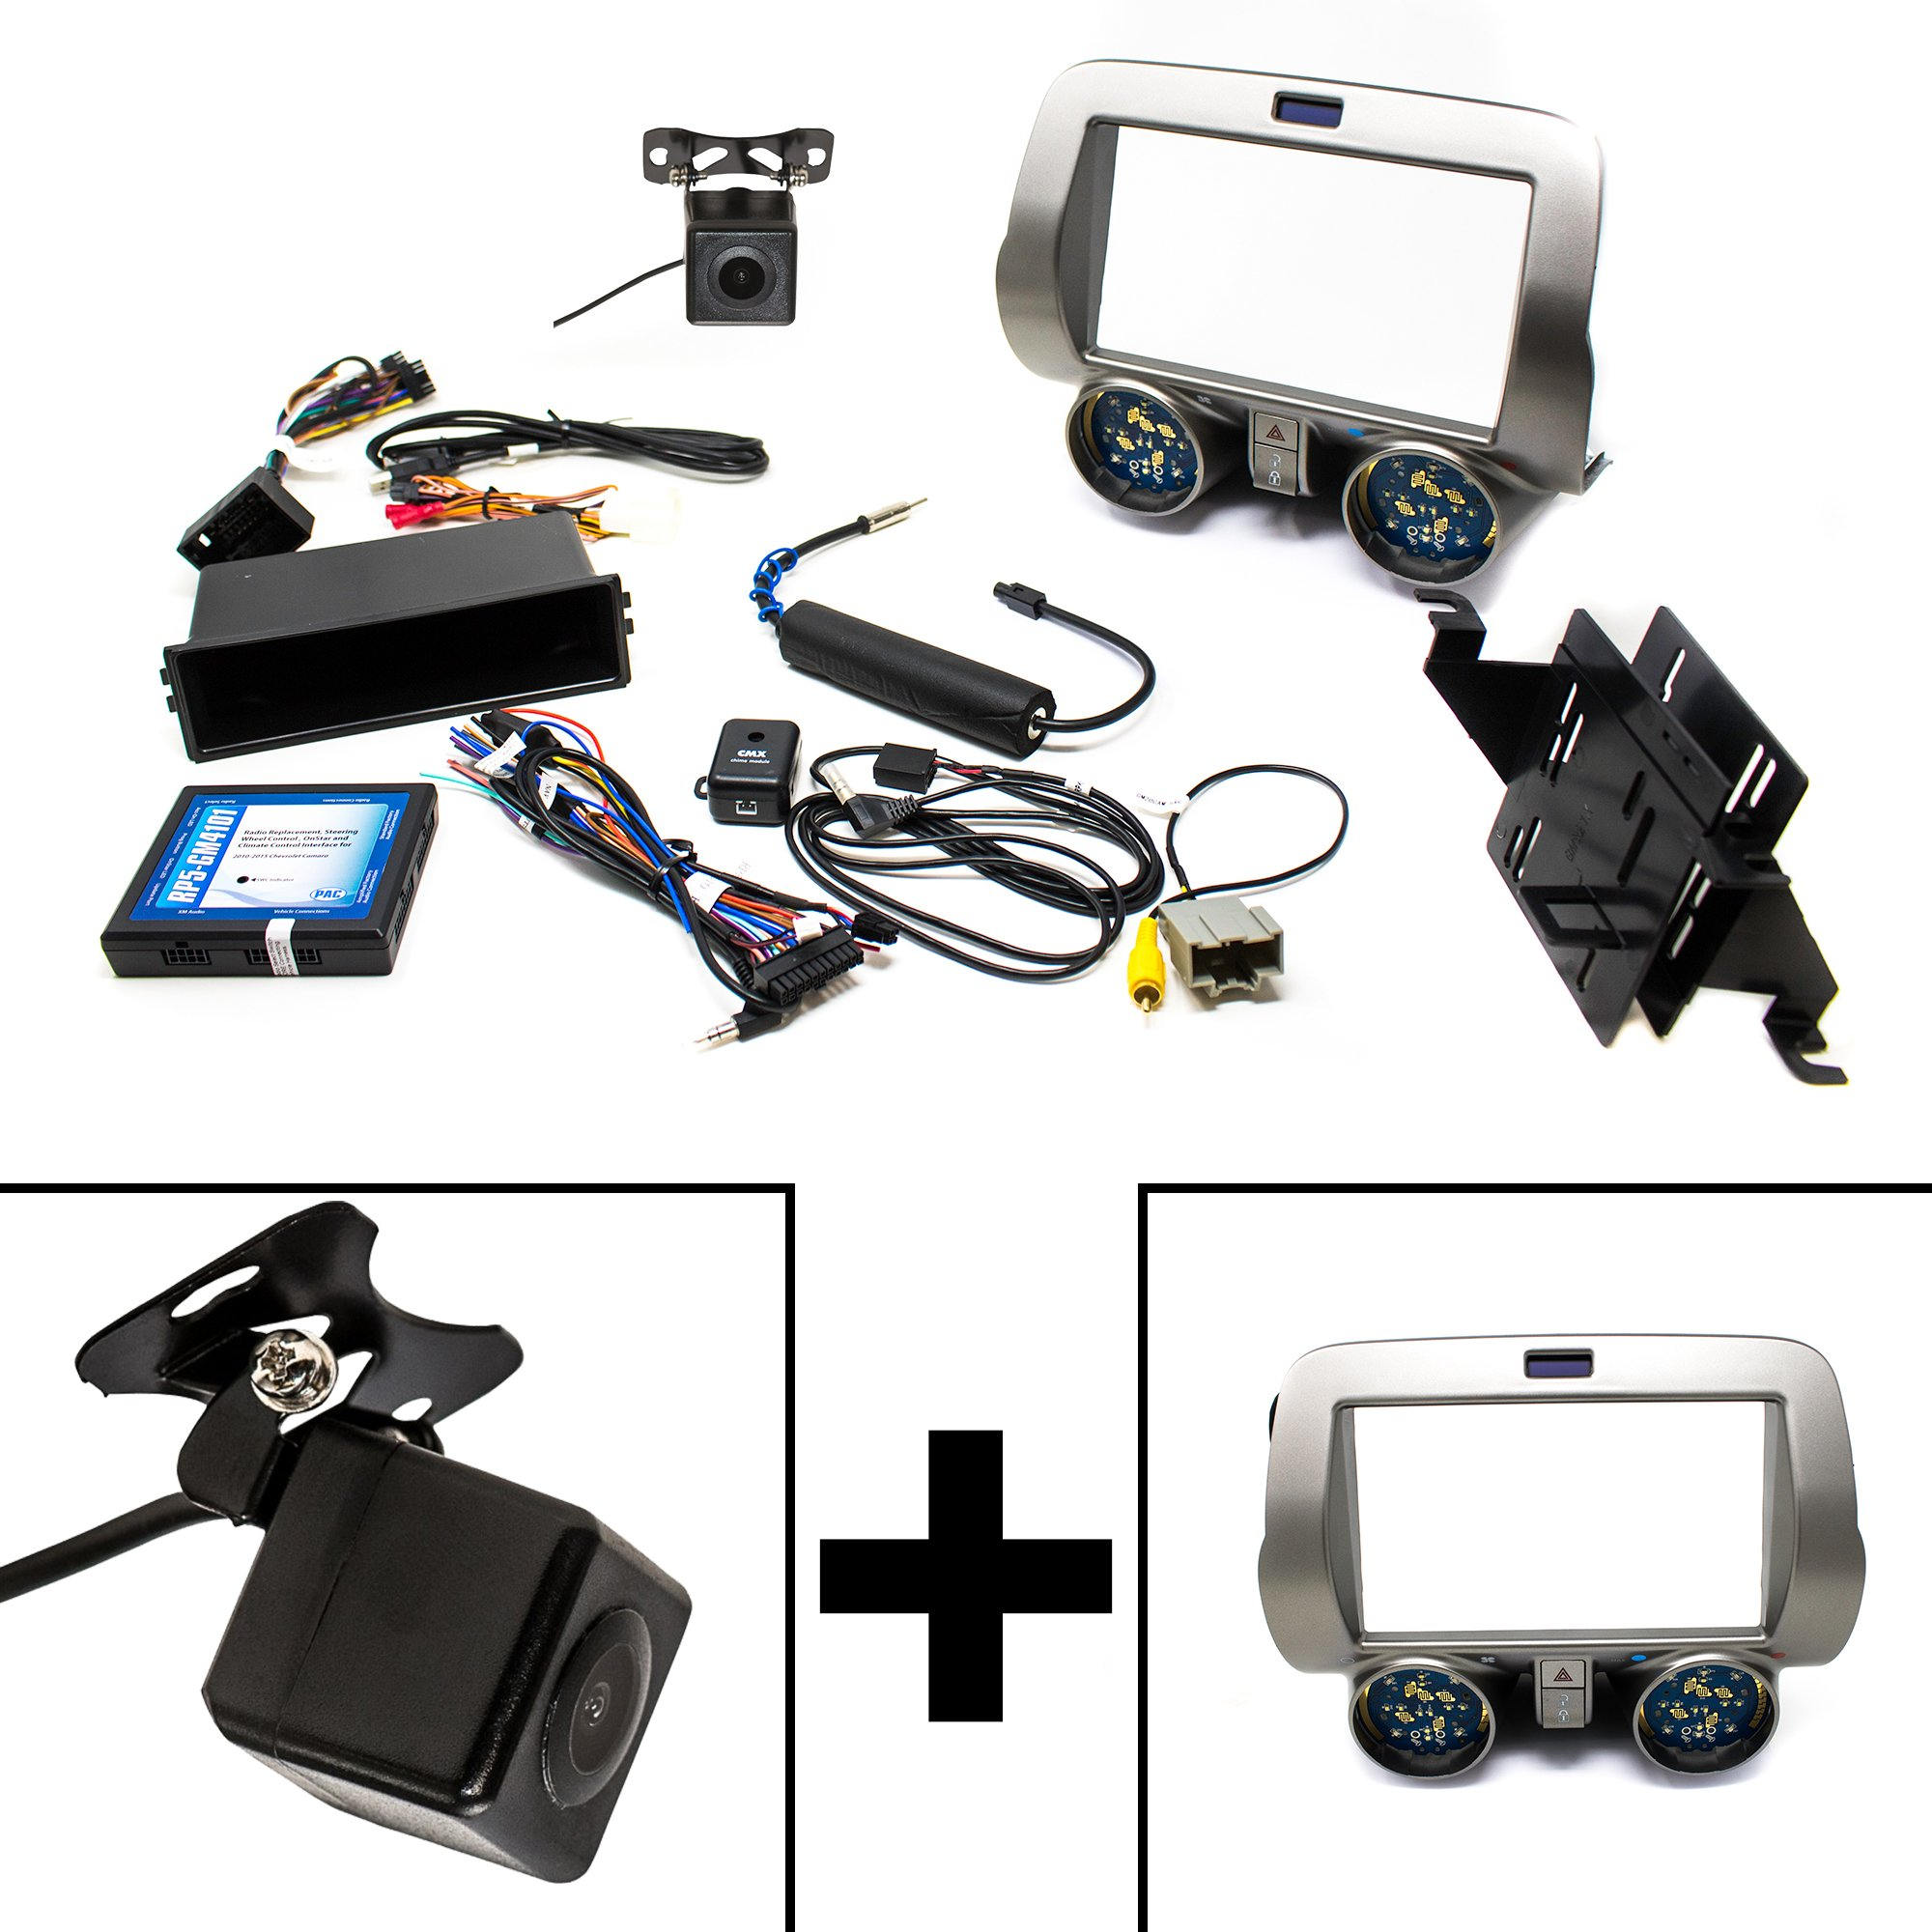 PAC RPK5-GM4101 Chevrolet Camaro Integrated Radio Replacement Kit 2010-15 (Grey With Back-Up Camera)